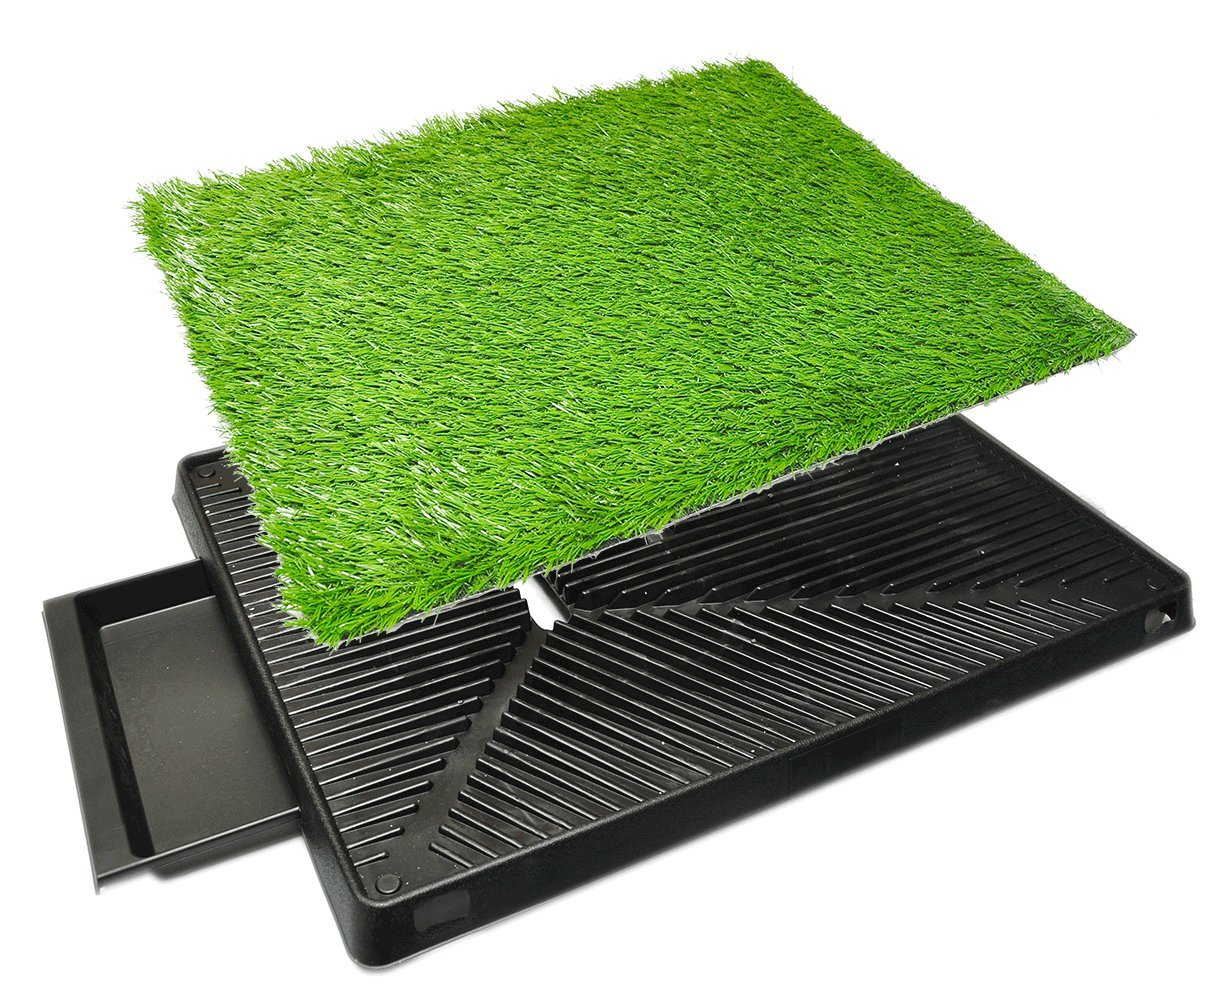 Downtown Pet Supply Dog Pee Potty Pad, Bathroom Tinkle Artificial Grass Turf, Portable Potty Trainer (20 x 25 inches with Drawer) by Downtown Pet Supply (Image #2)